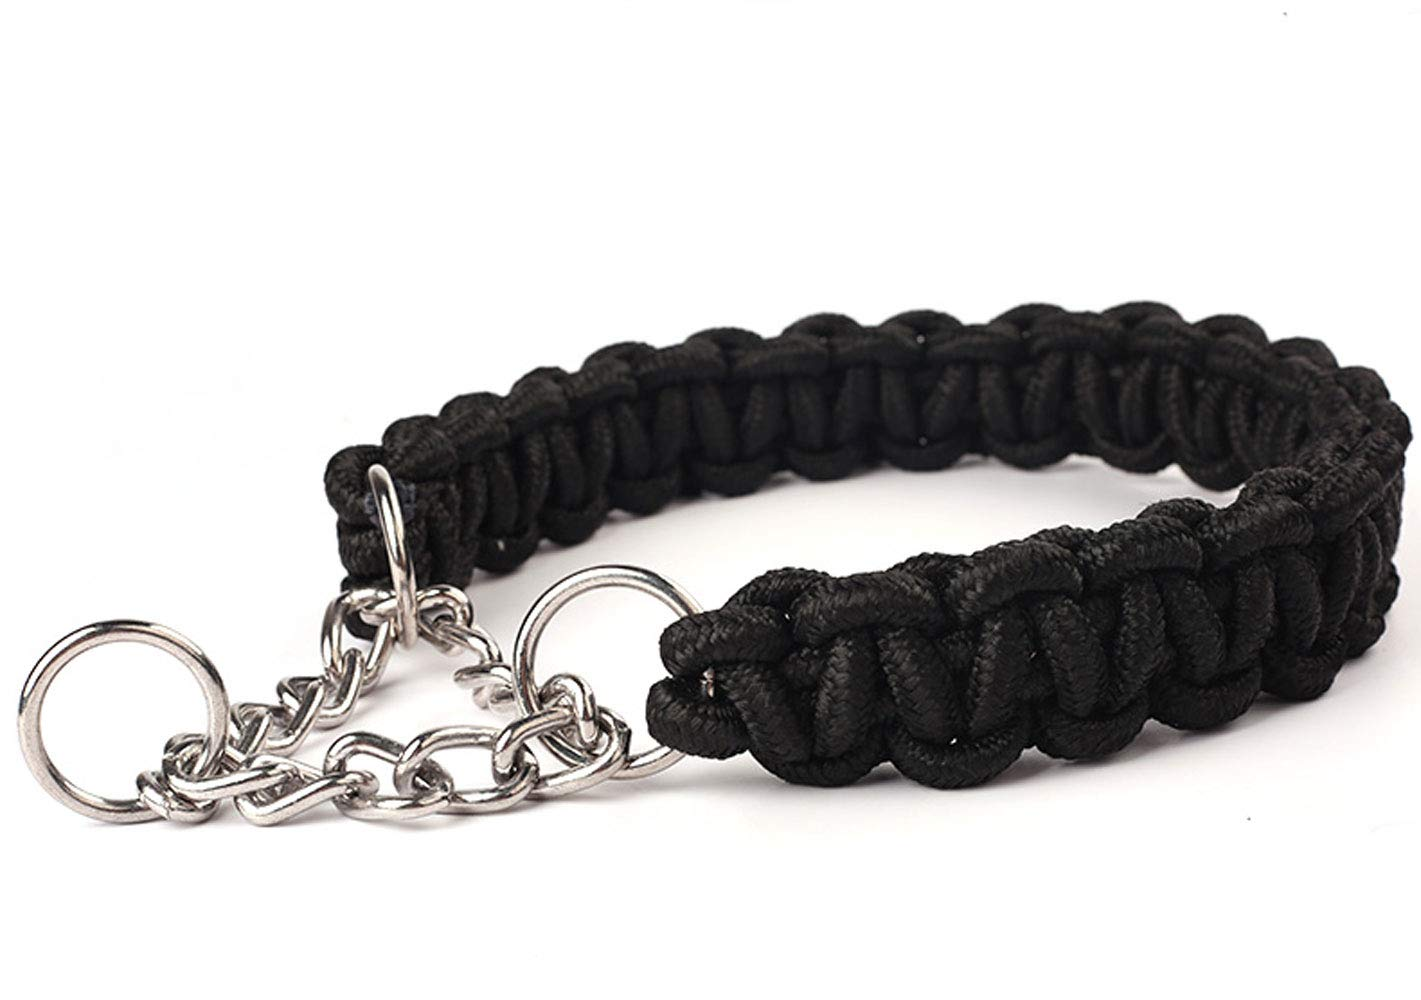 Black XL Black XL Dog Collar Nylon Pull Comfort and Soft Suitable for Medium and Large Dogs and Pet Supplies,Black,XL